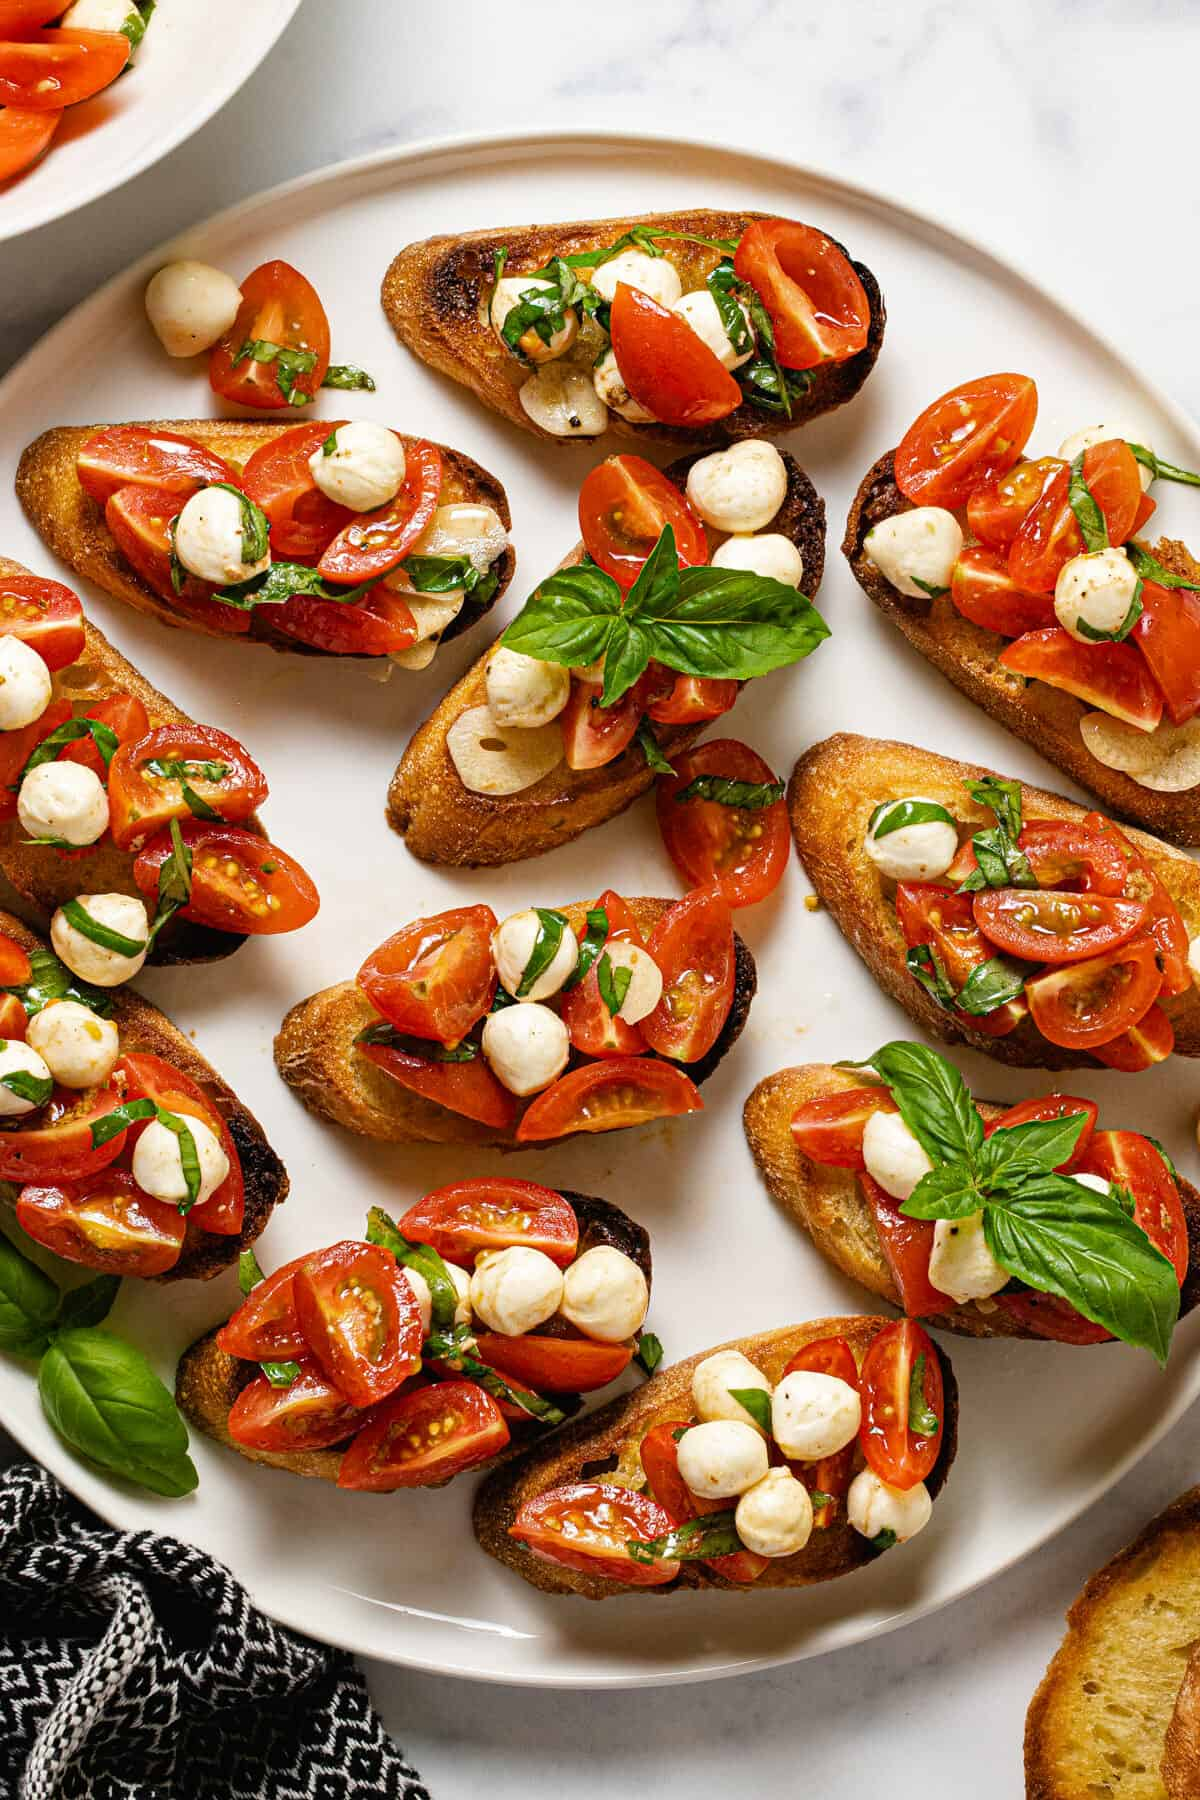 White plate filled with tomato bruschetta garnished with fresh basil